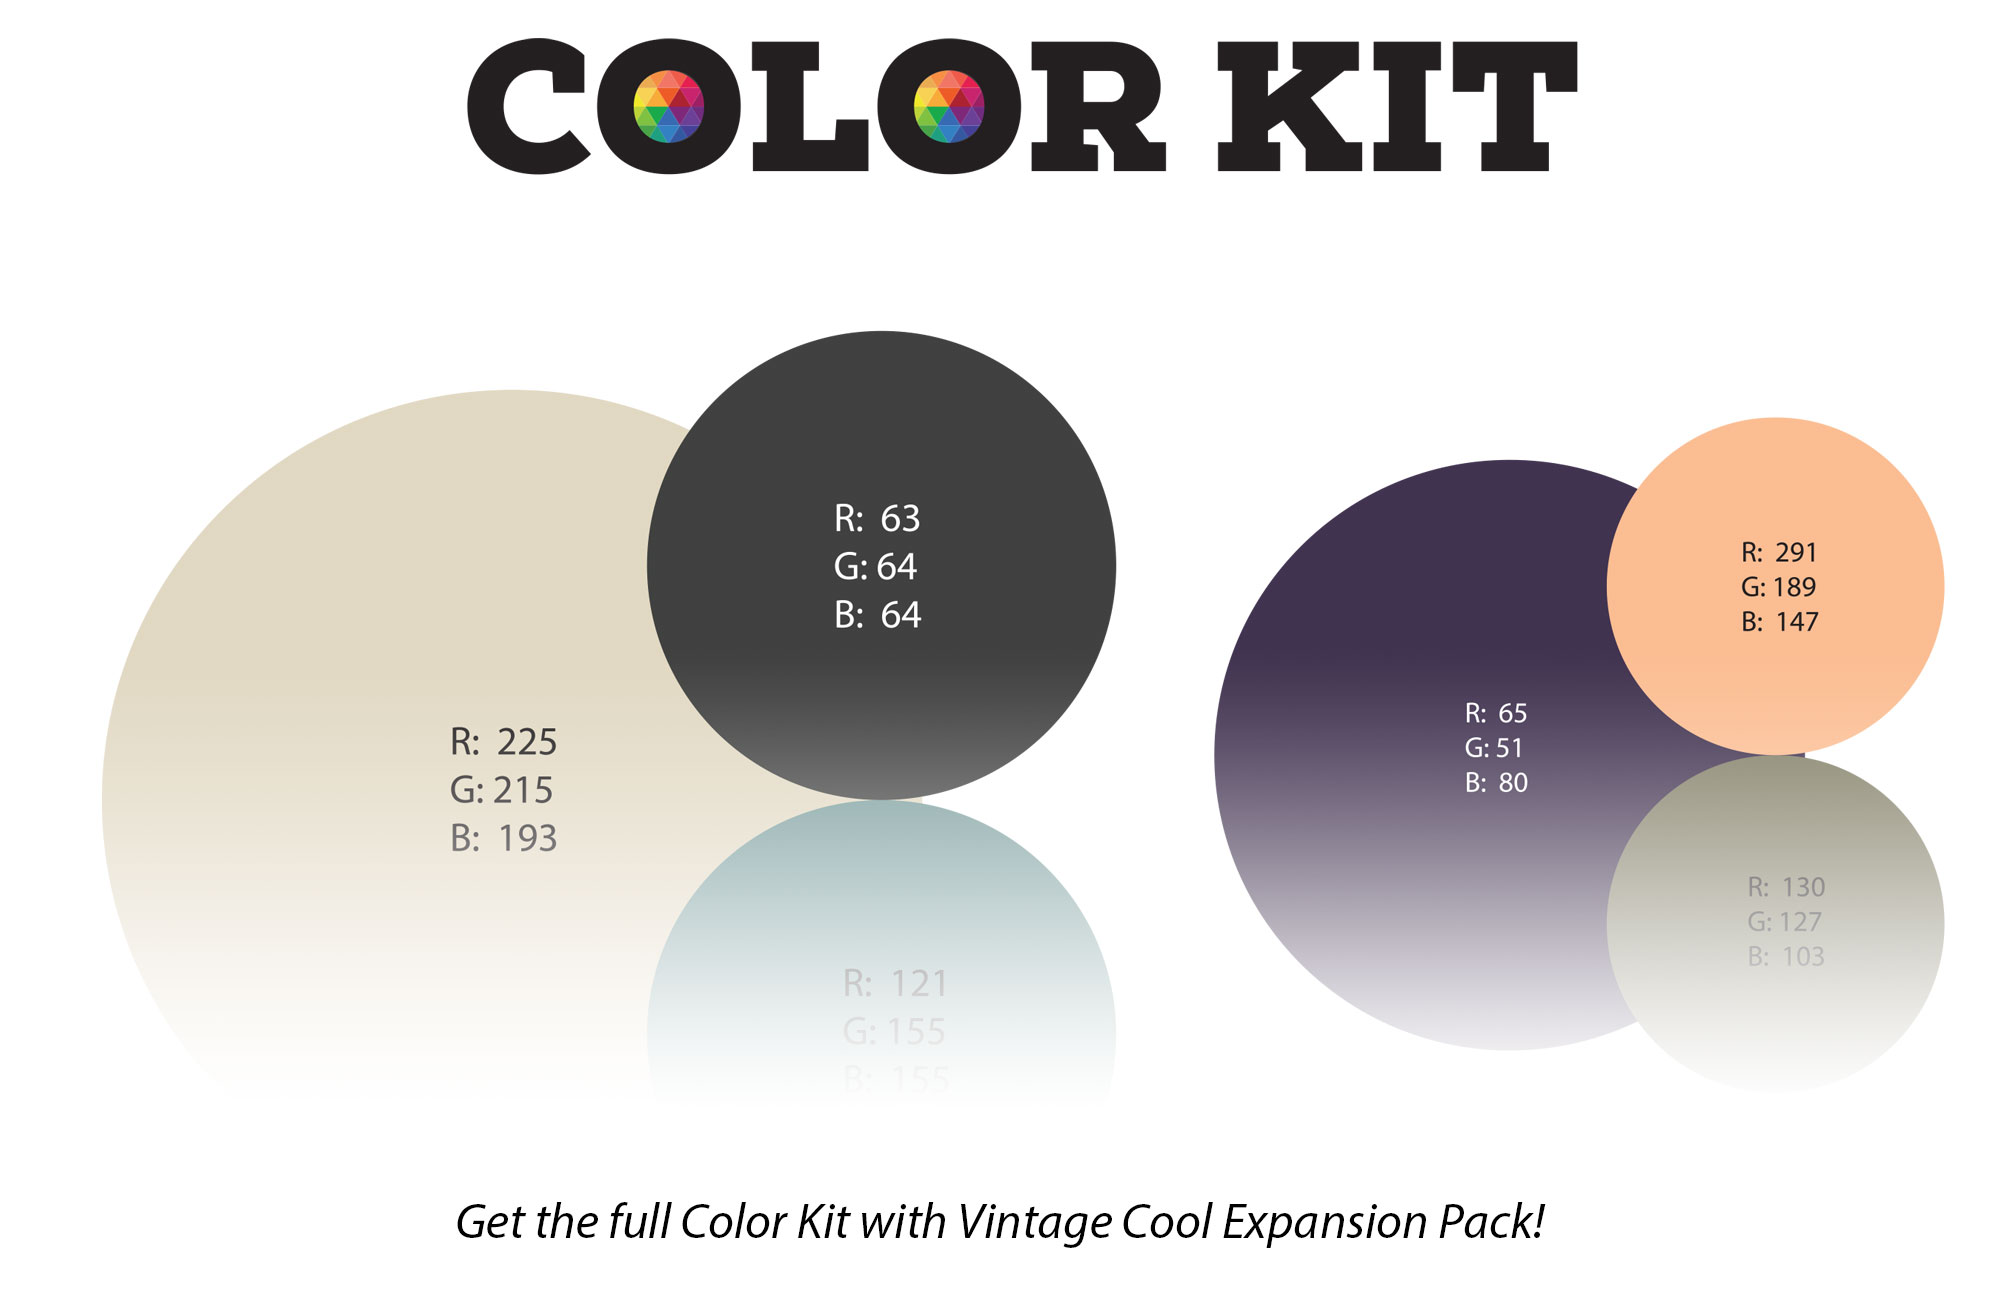 Color Kit